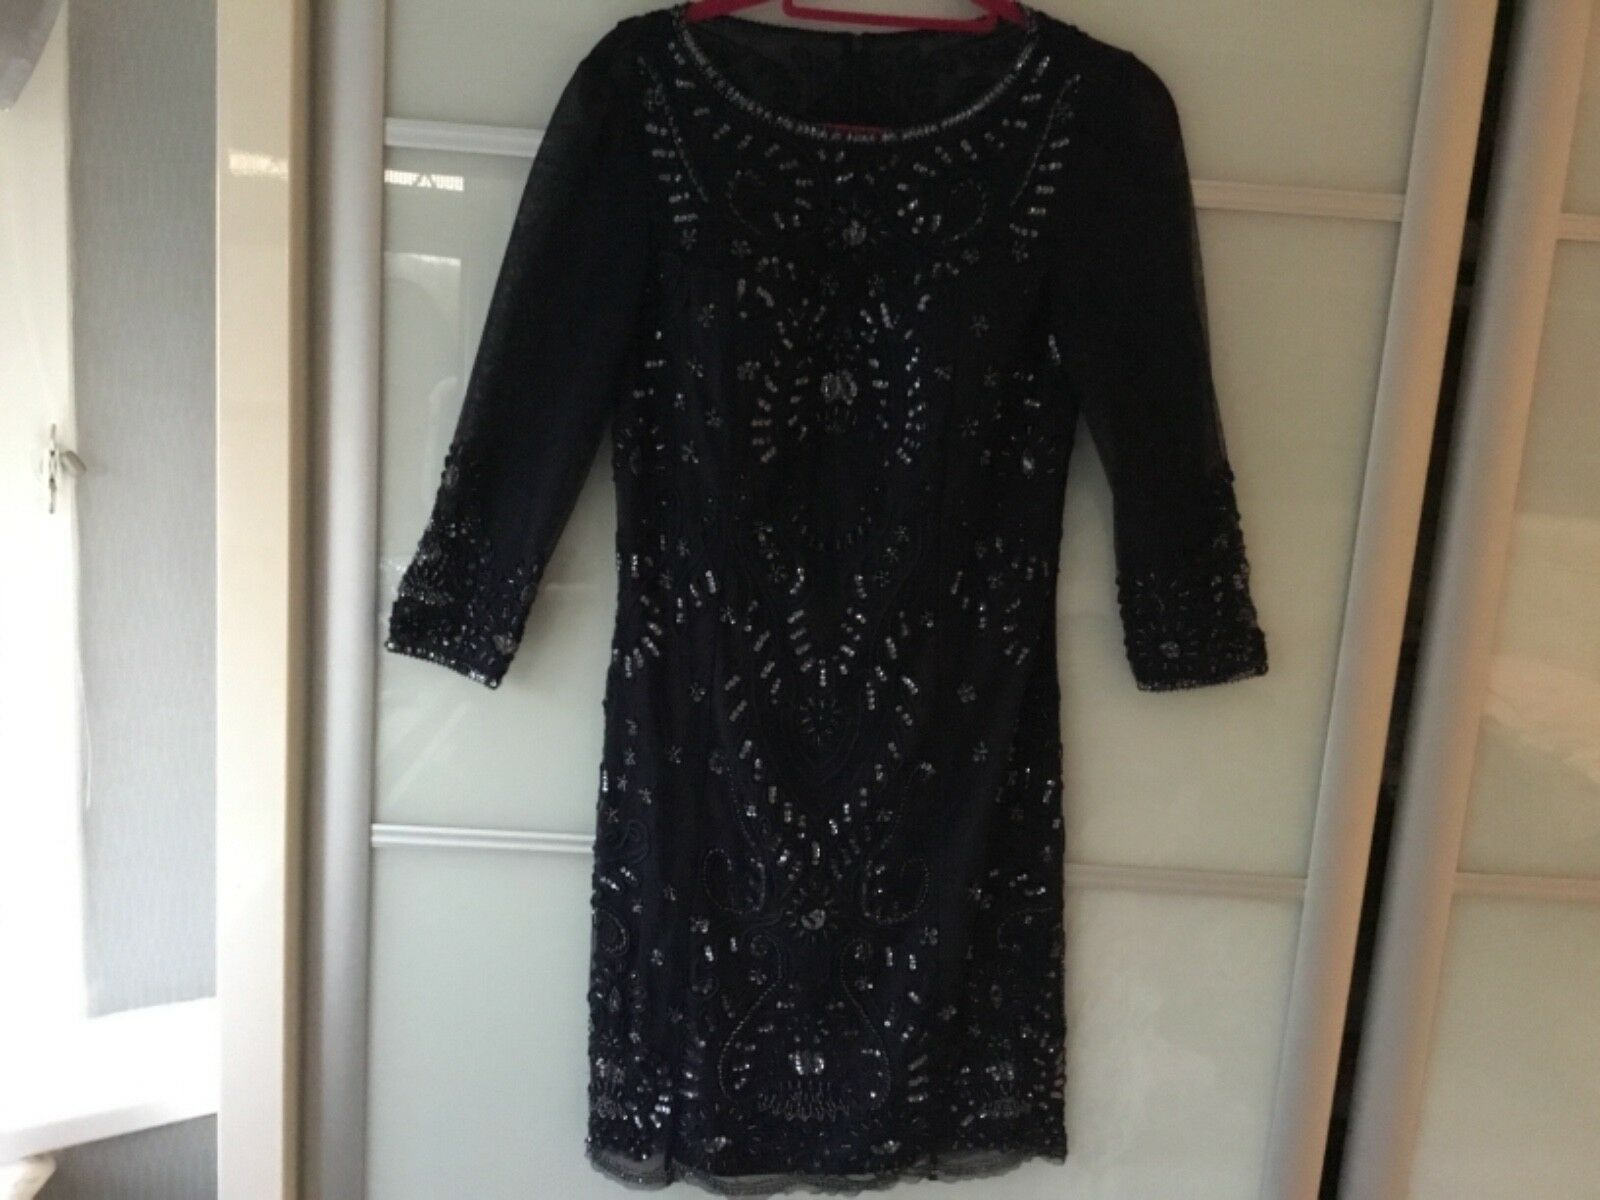 Adrianna papell navy sequin and bead embellished evening dress size 10 bnwt